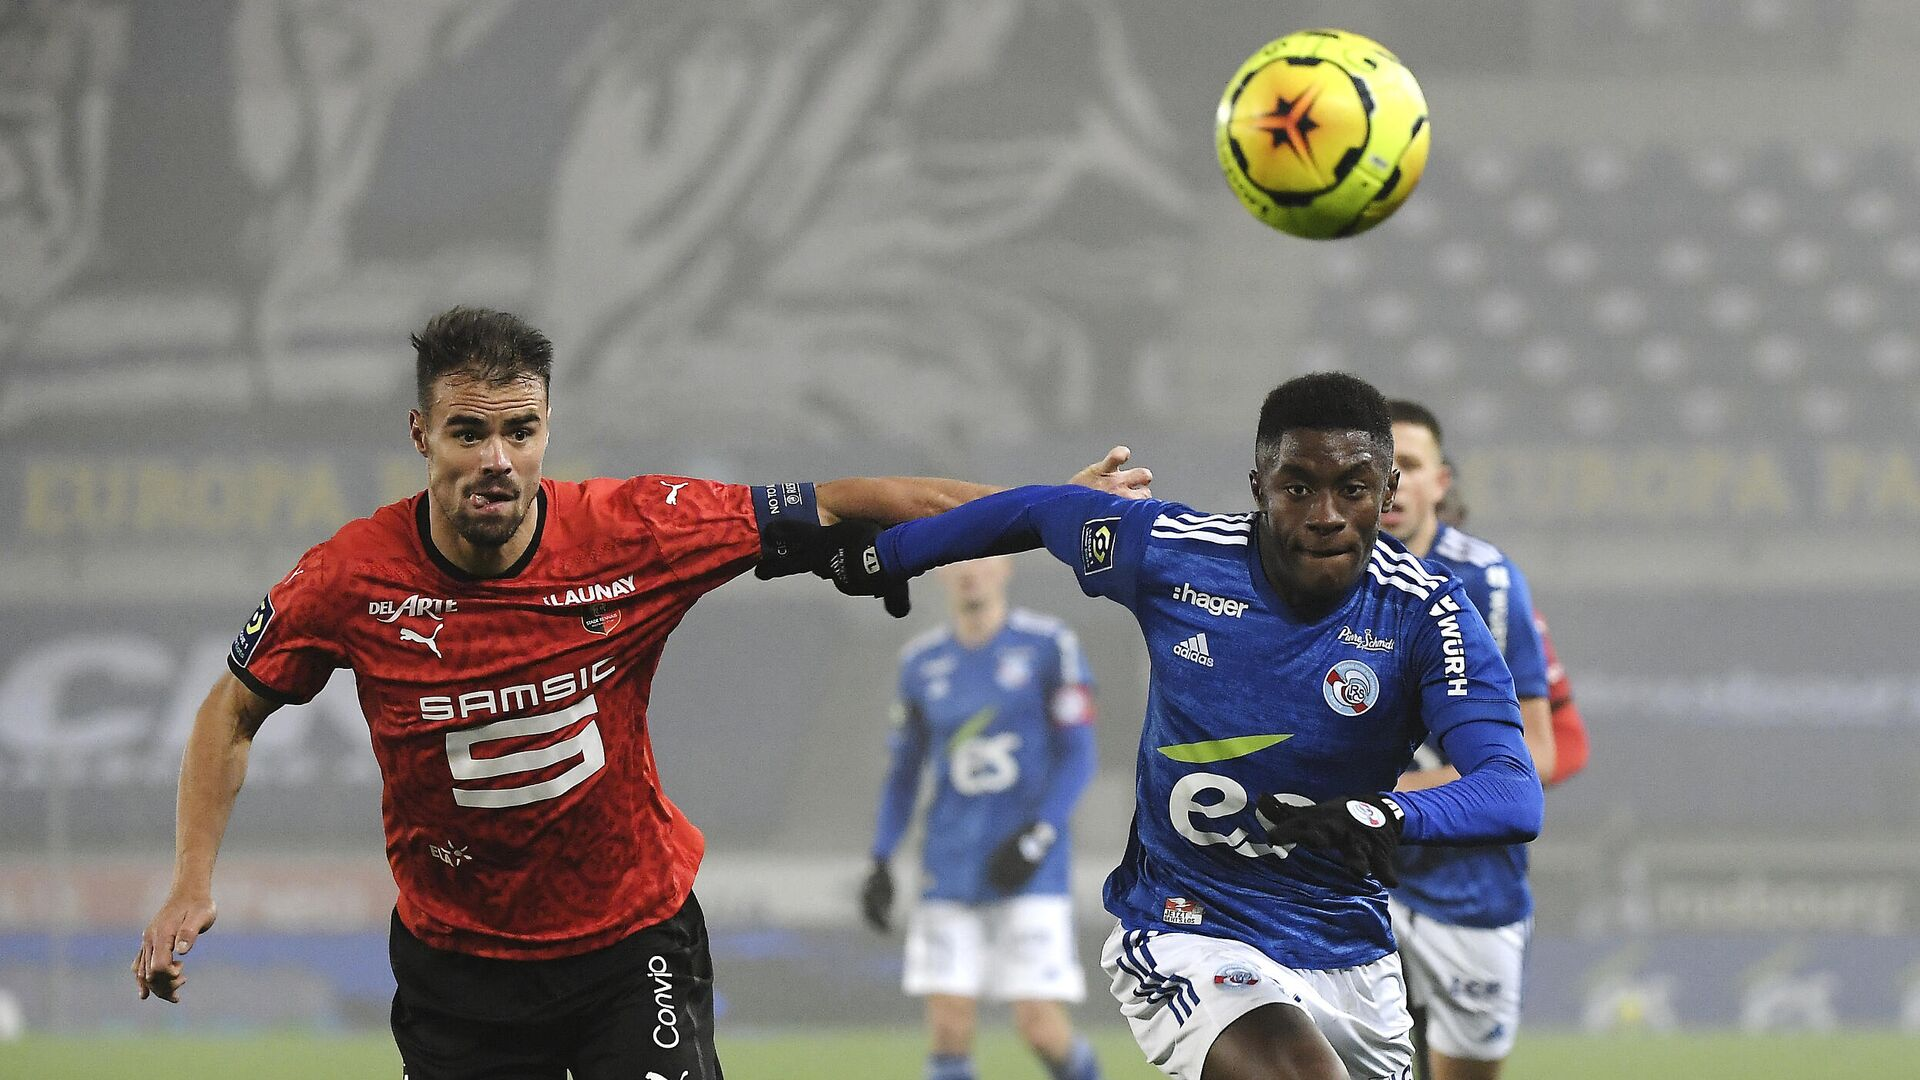 Strasbourg's French midfielder Jeanricner Bellegarde (R) fights for the ball with Rennes' French defender Damien Da Silva during the French L1 football match between Strasbourg (RCSA) and Stade Rennais (SR) at the Meinau stadium in Strasbourg, eastern France, on November 27, 2020. (Photo by FREDERICK FLORIN / AFP) - РИА Новости, 1920, 28.11.2020